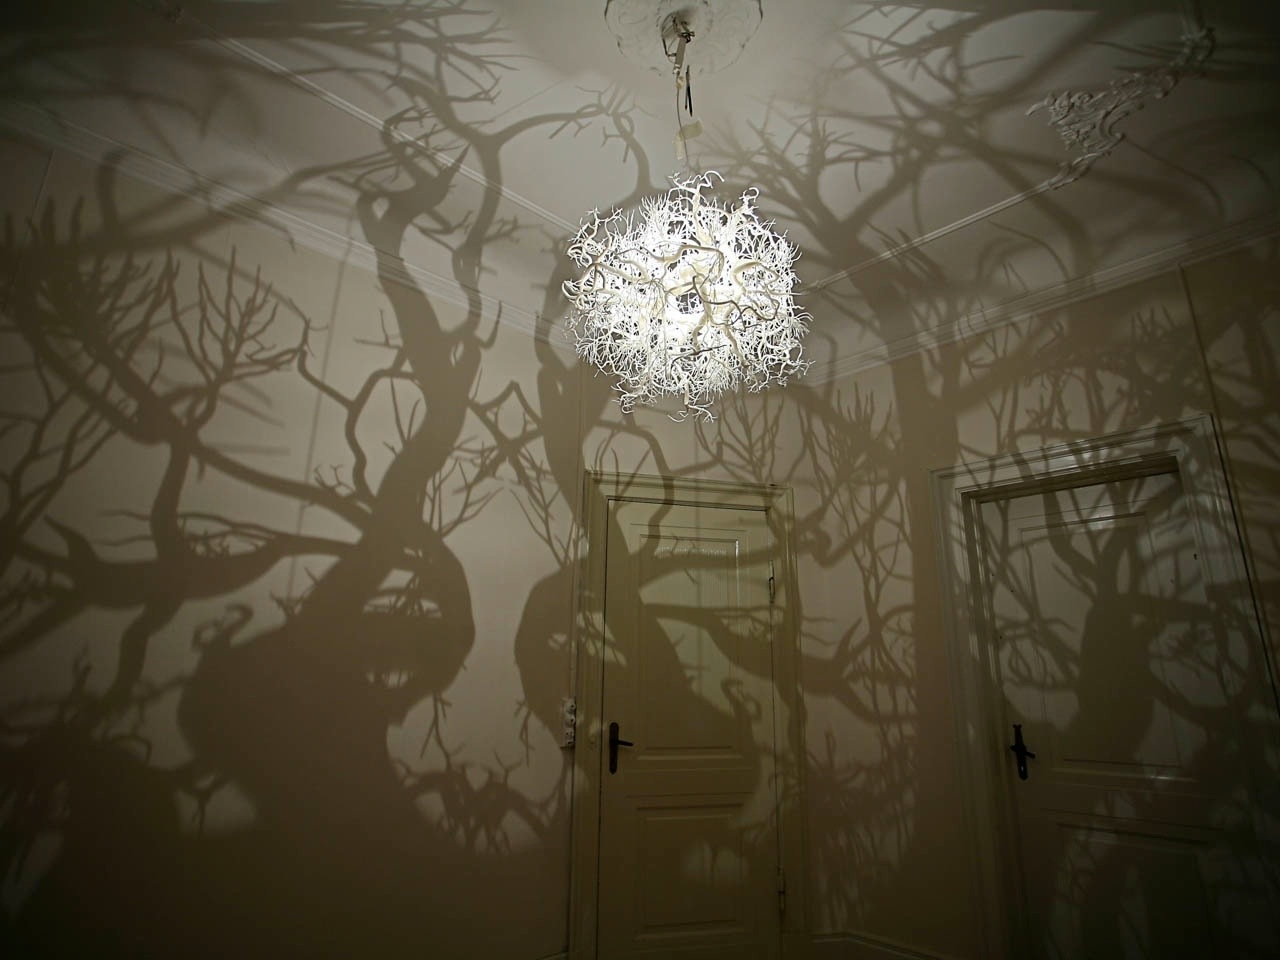 inspiration-forms-in-nature-hilden-diaz-chandelier